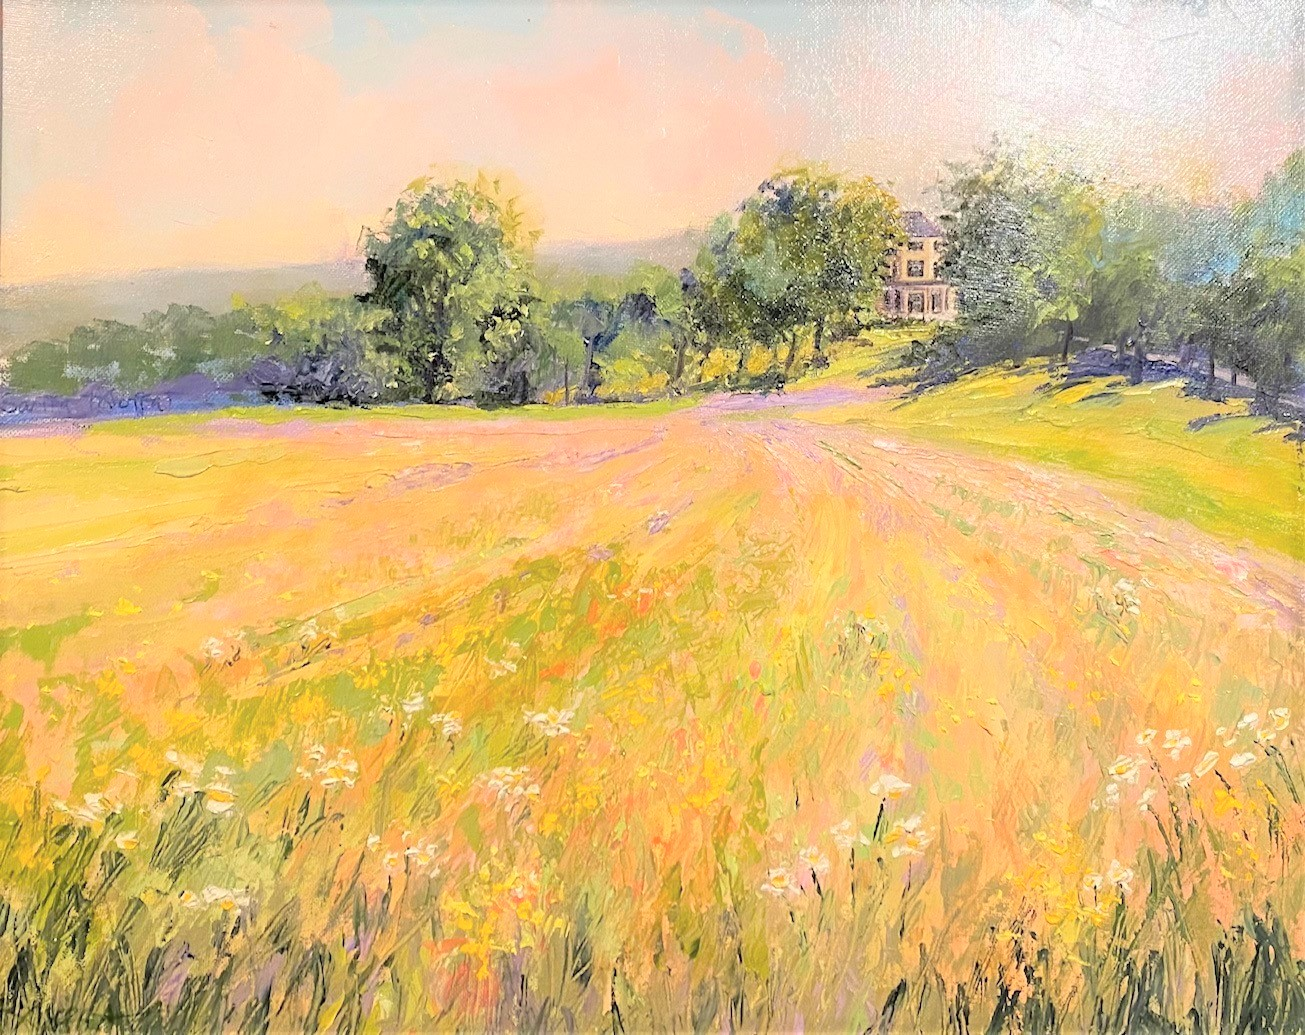 Moffat-Sarita_Oatlands in the Summer_Oil